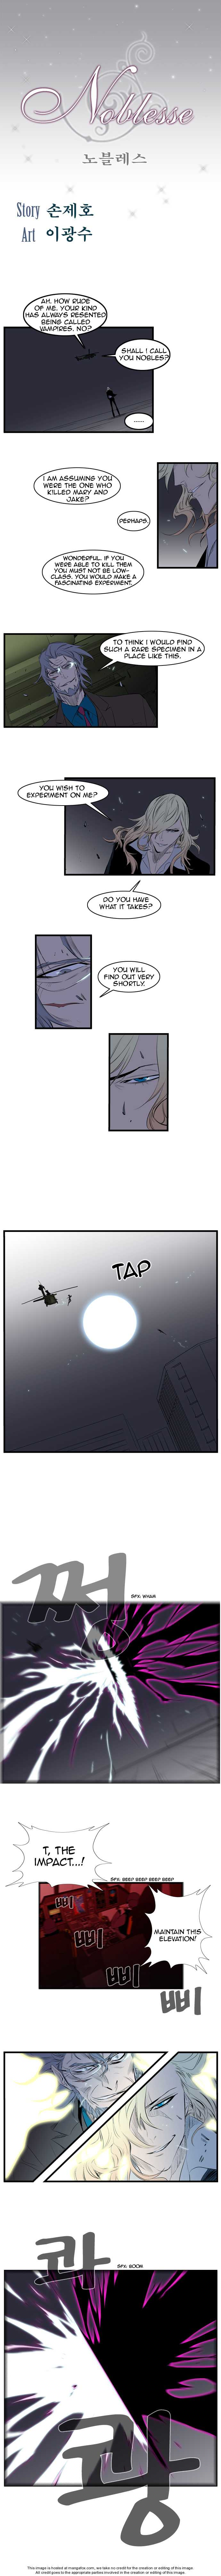 Noblesse 89 Page 1